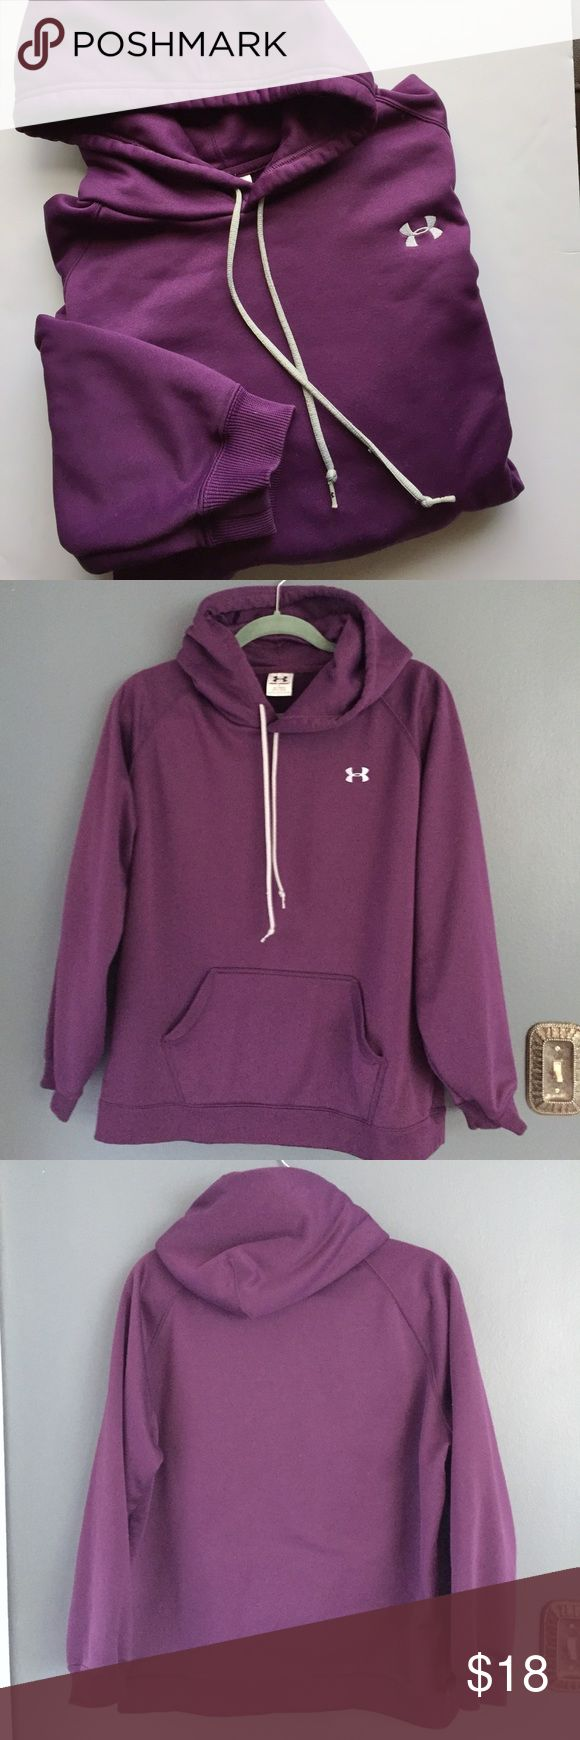 Under Armour Hoodie 🍆 Women's Under Armor Hoodie in purple!  UA's women's hoodies & sweatshirts are ready for anything, so you can be, too. Lightweight, comfortable & warm! ☔️ Excellent condition! Size XL. Under Armour Tops Sweatshirts & Hoodies